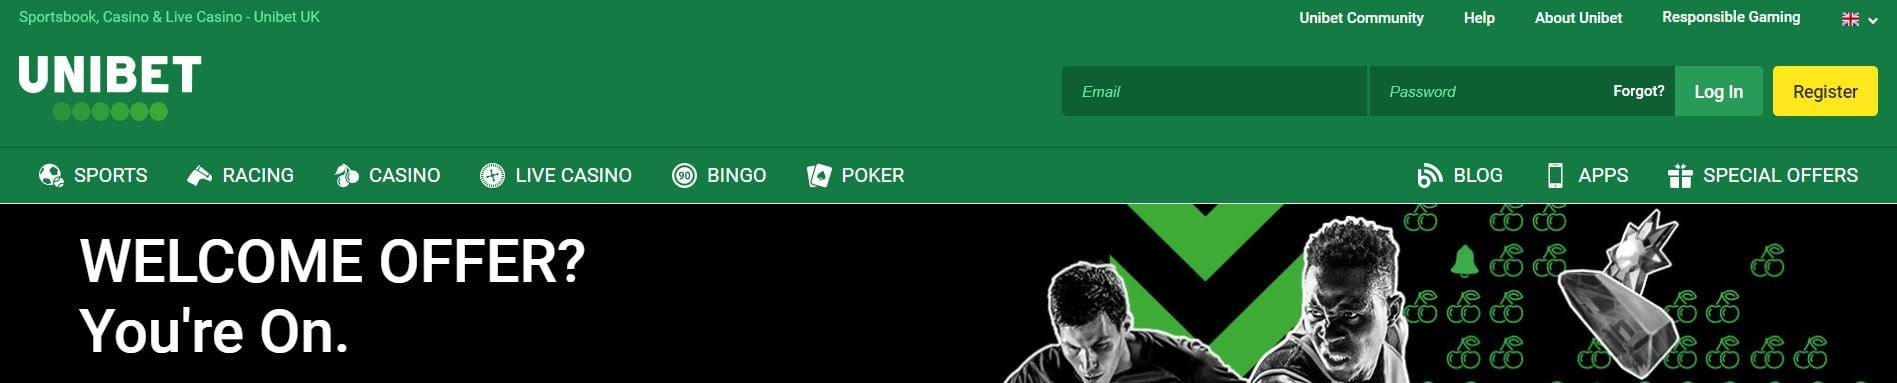 Sign up with Unibet